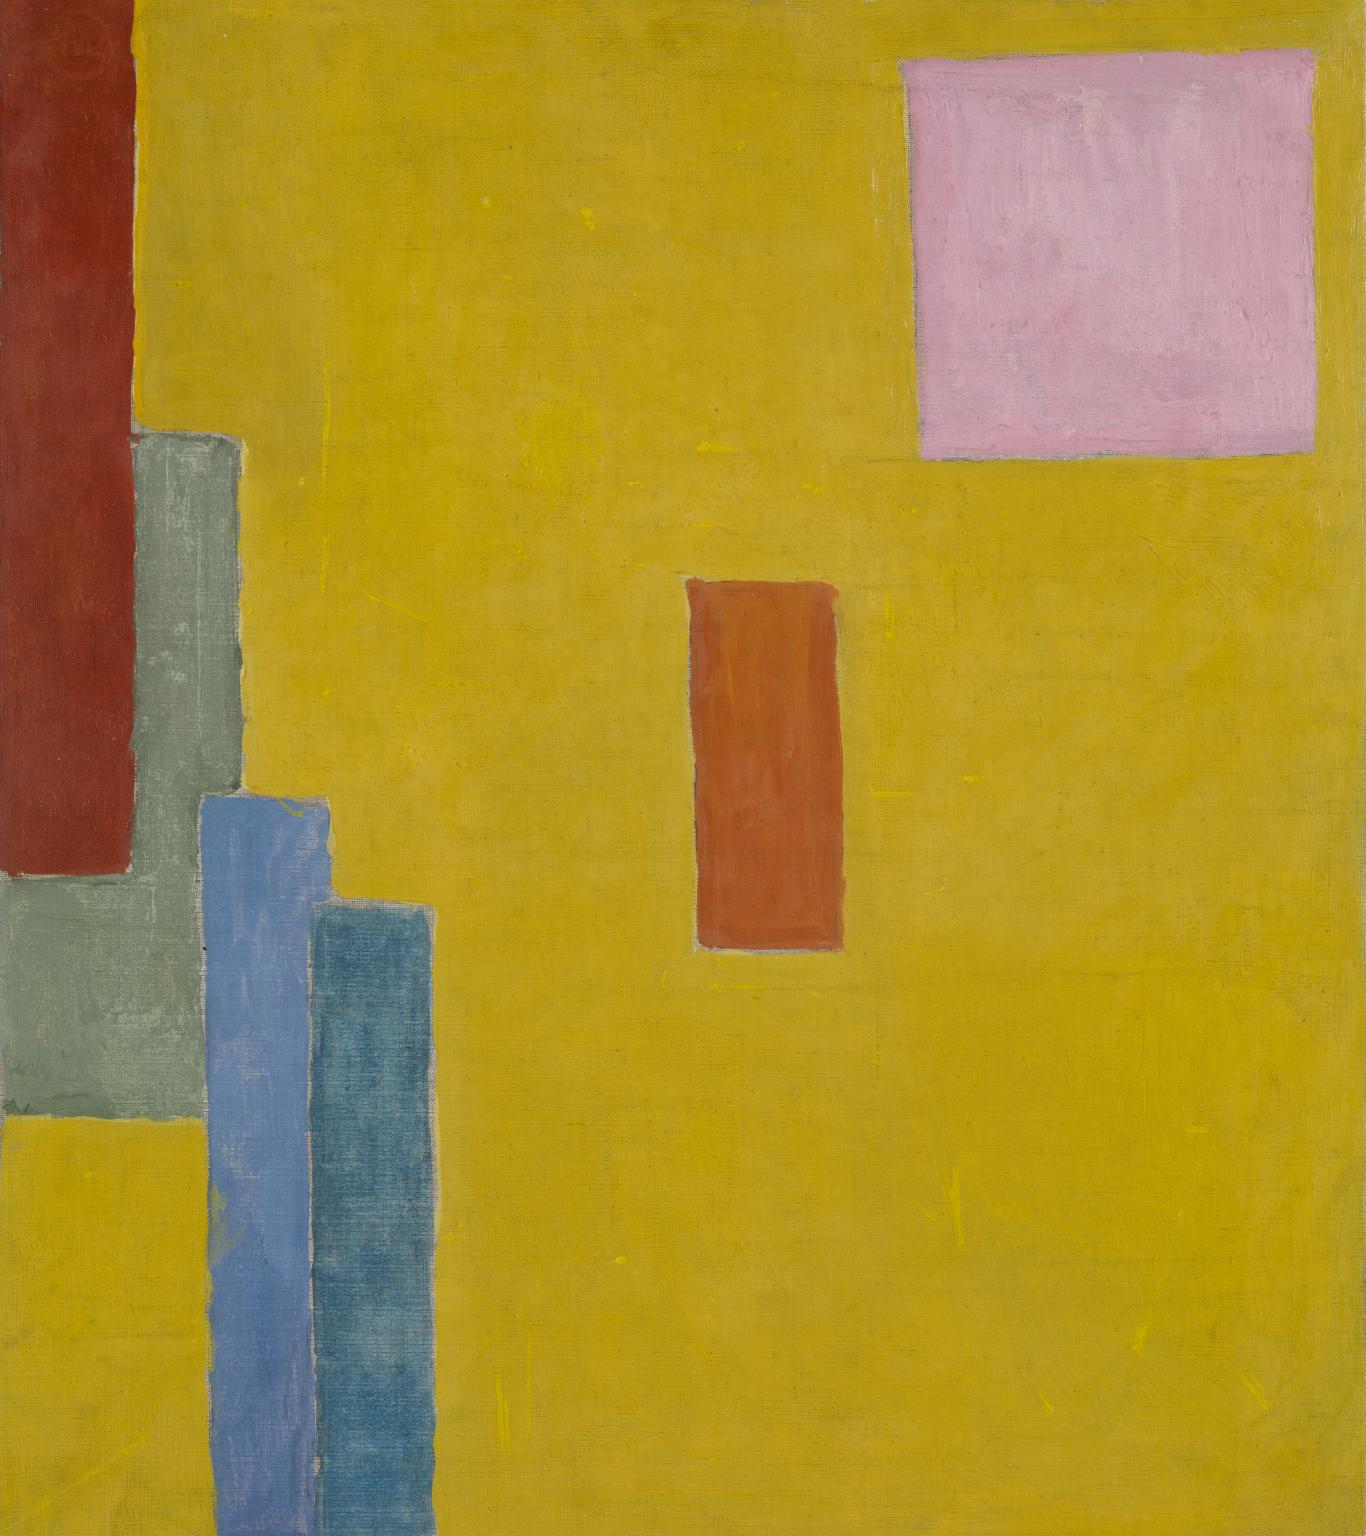 The Painting | Tate